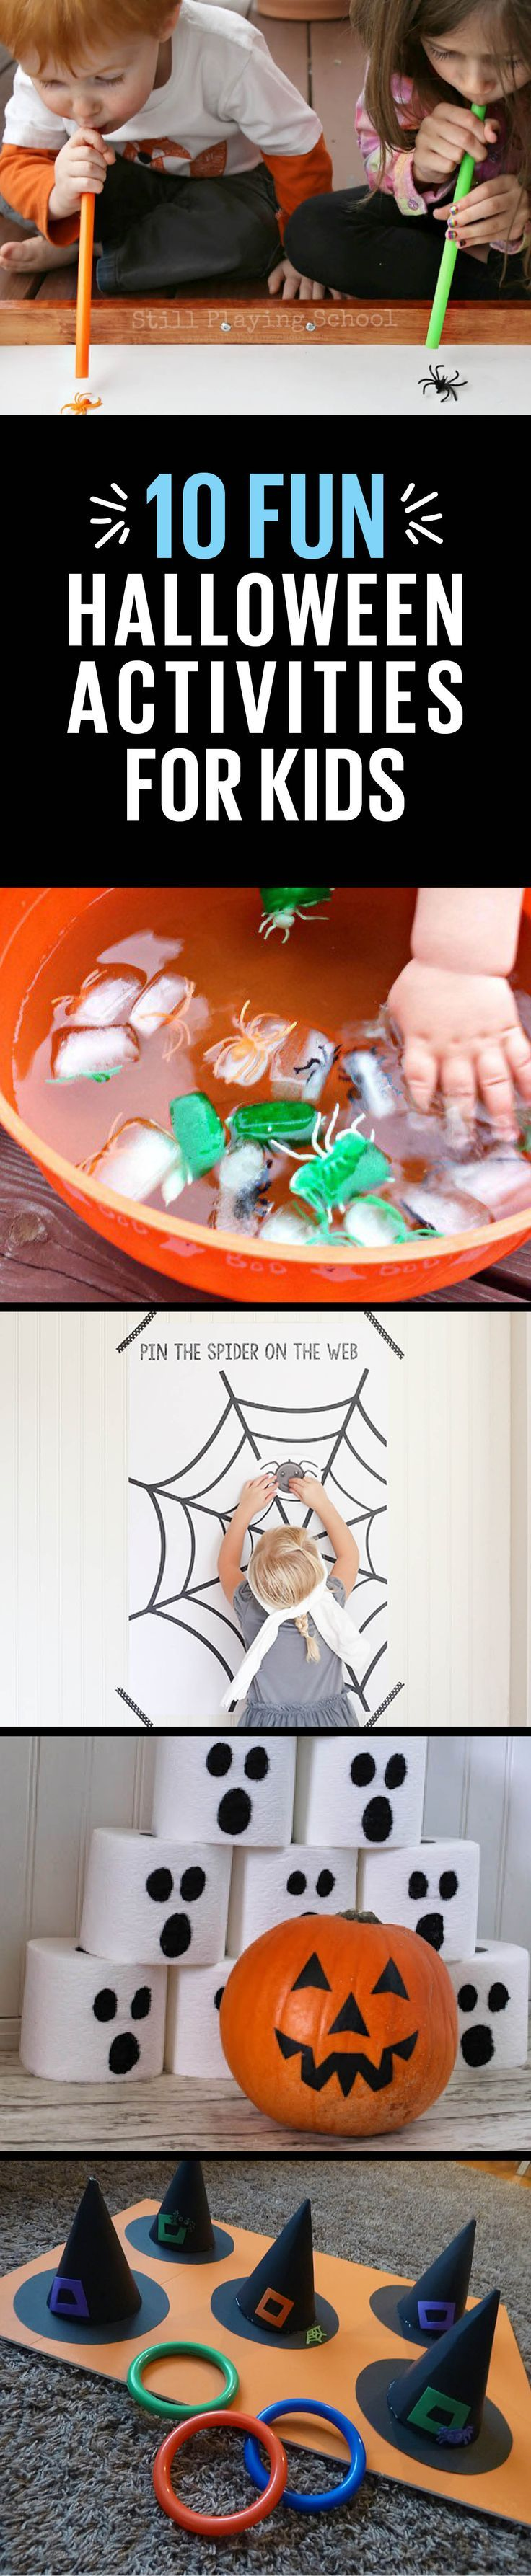 Witch's hat ring toss, pin the spider on the web...so many spooky-fun ideas to get your little ghouls in the Halloween spirit.